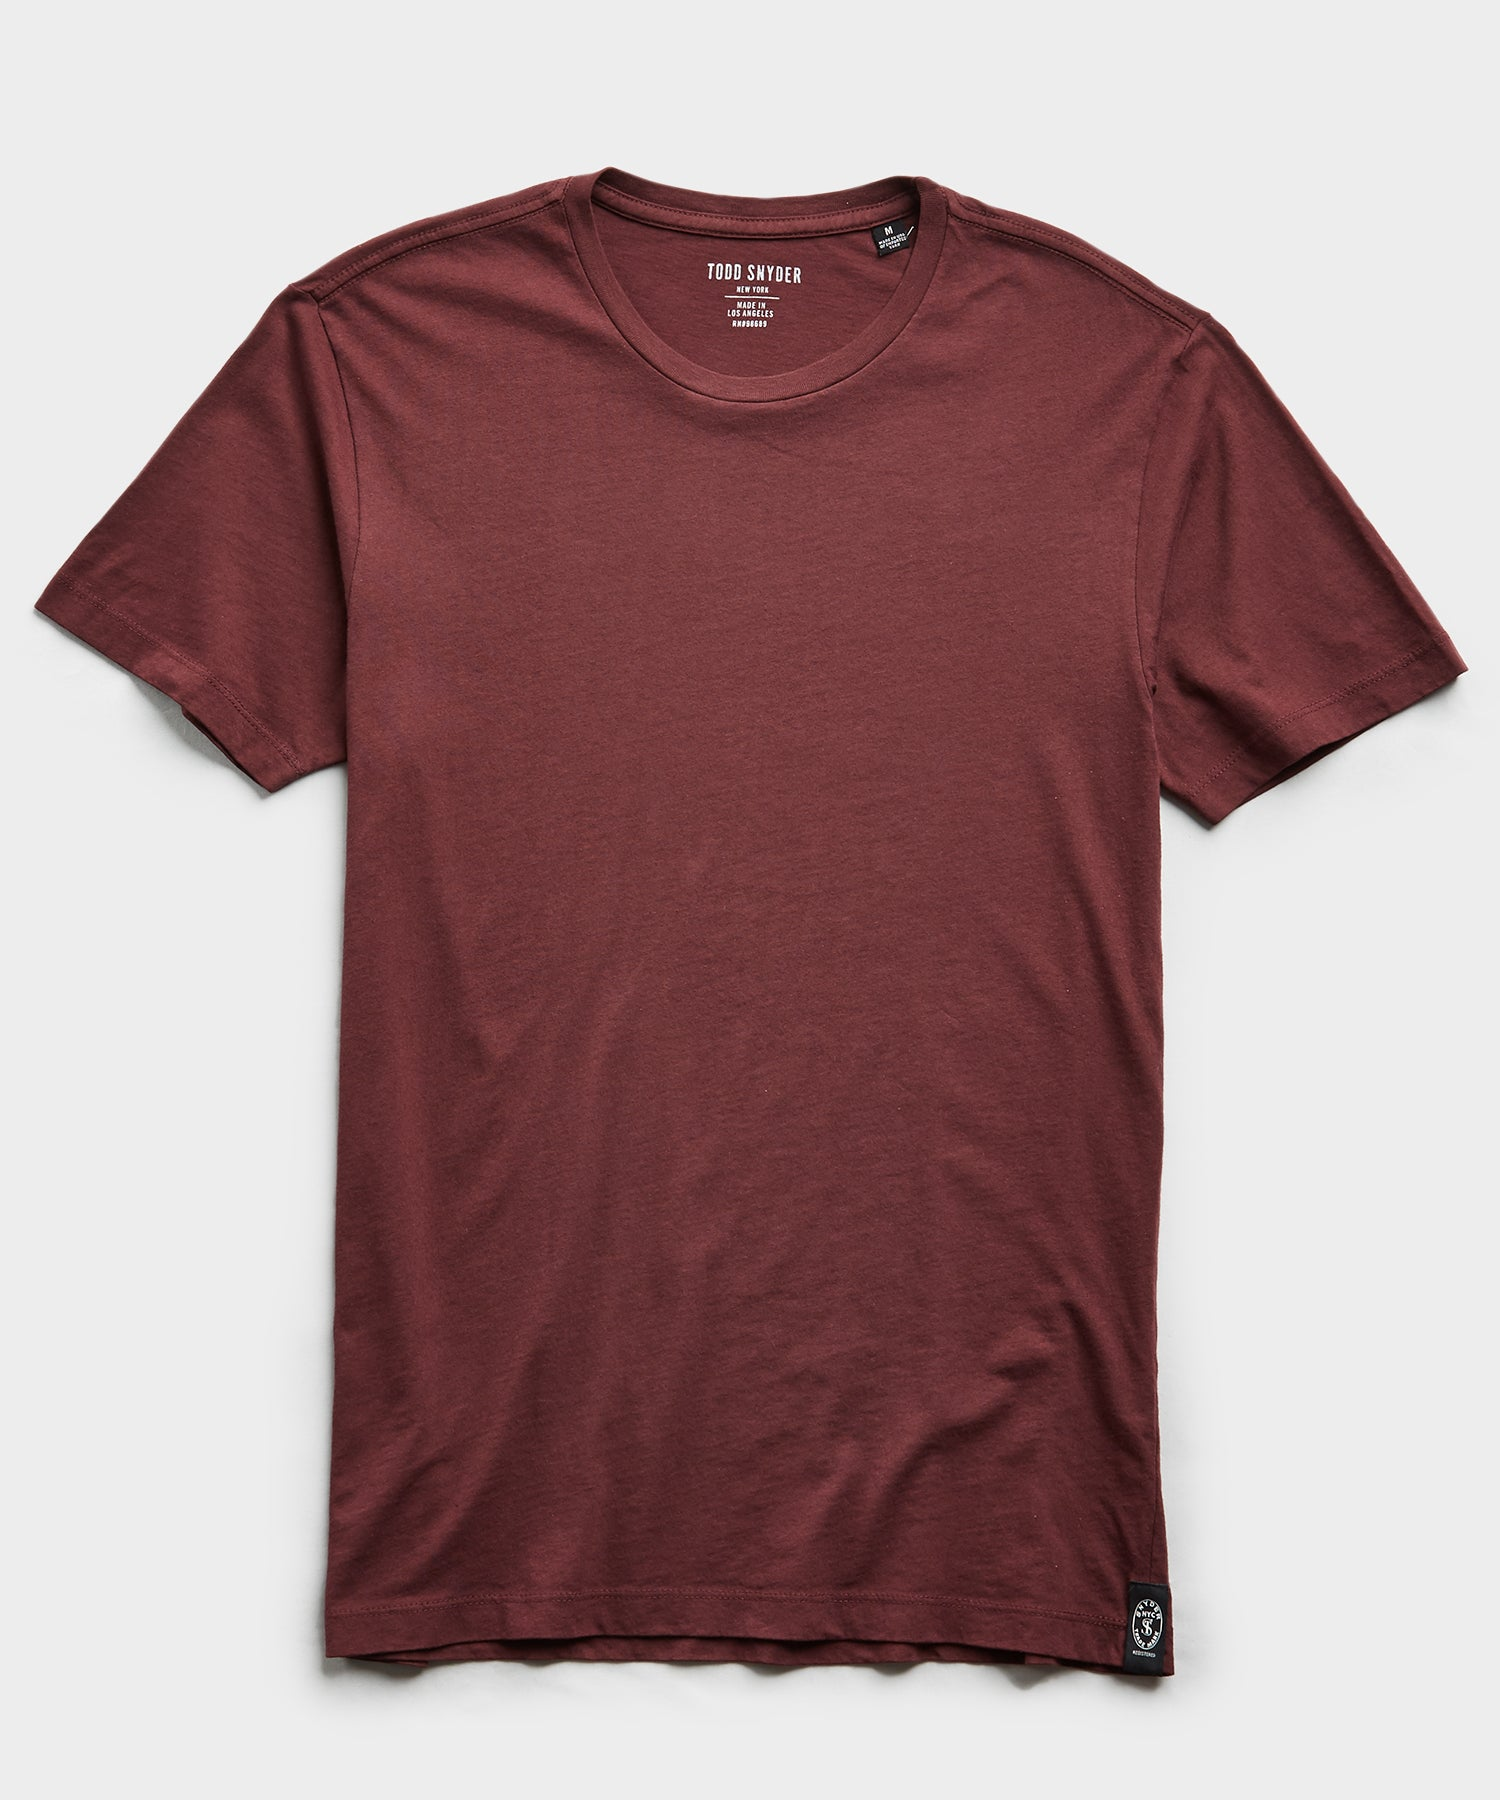 Made in L.A Jersey T-Shirt in Burgundy